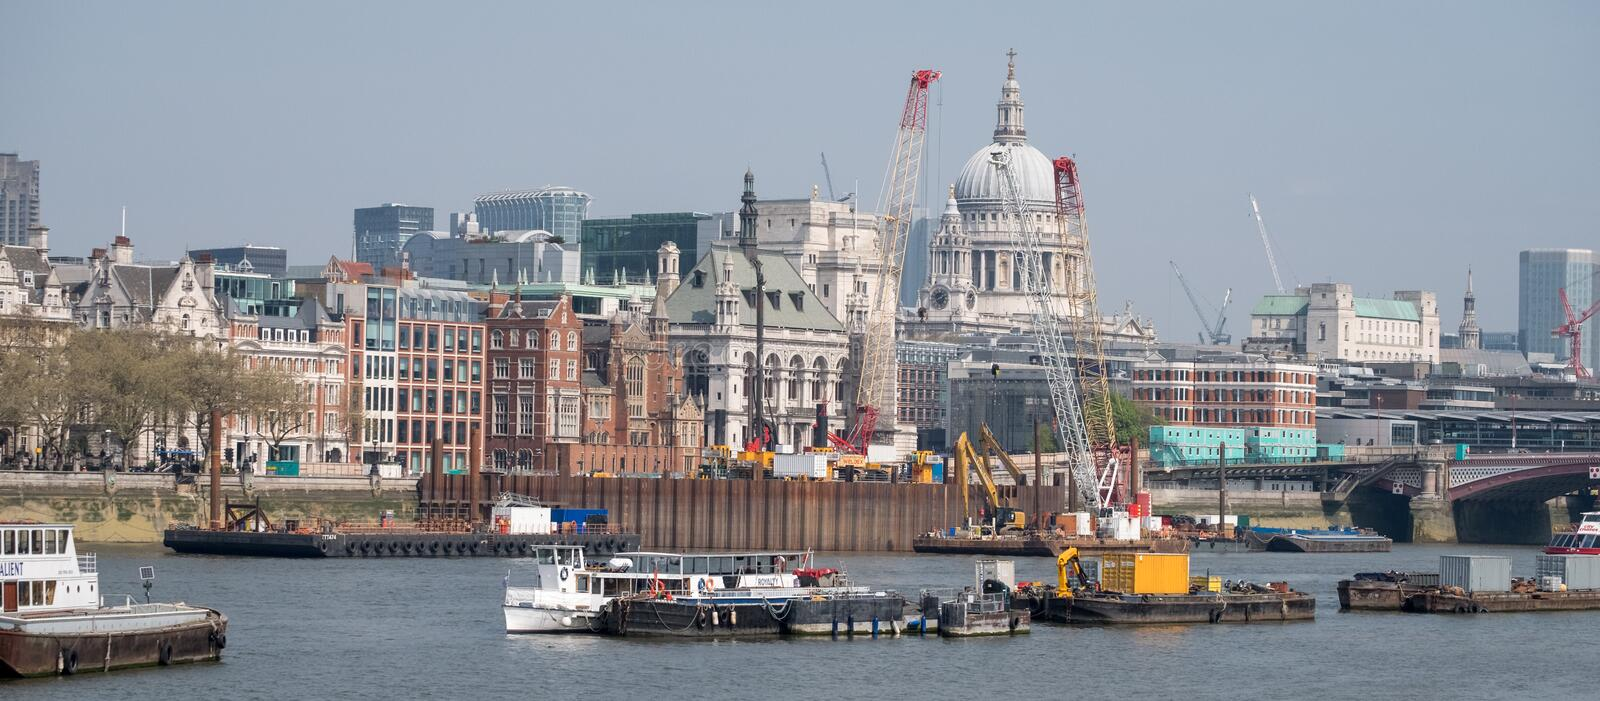 London UK. Panorama showing the iconic dome of St Paul`s Cathedral, the River Thames, cranes and buildings under construction royalty free stock photos